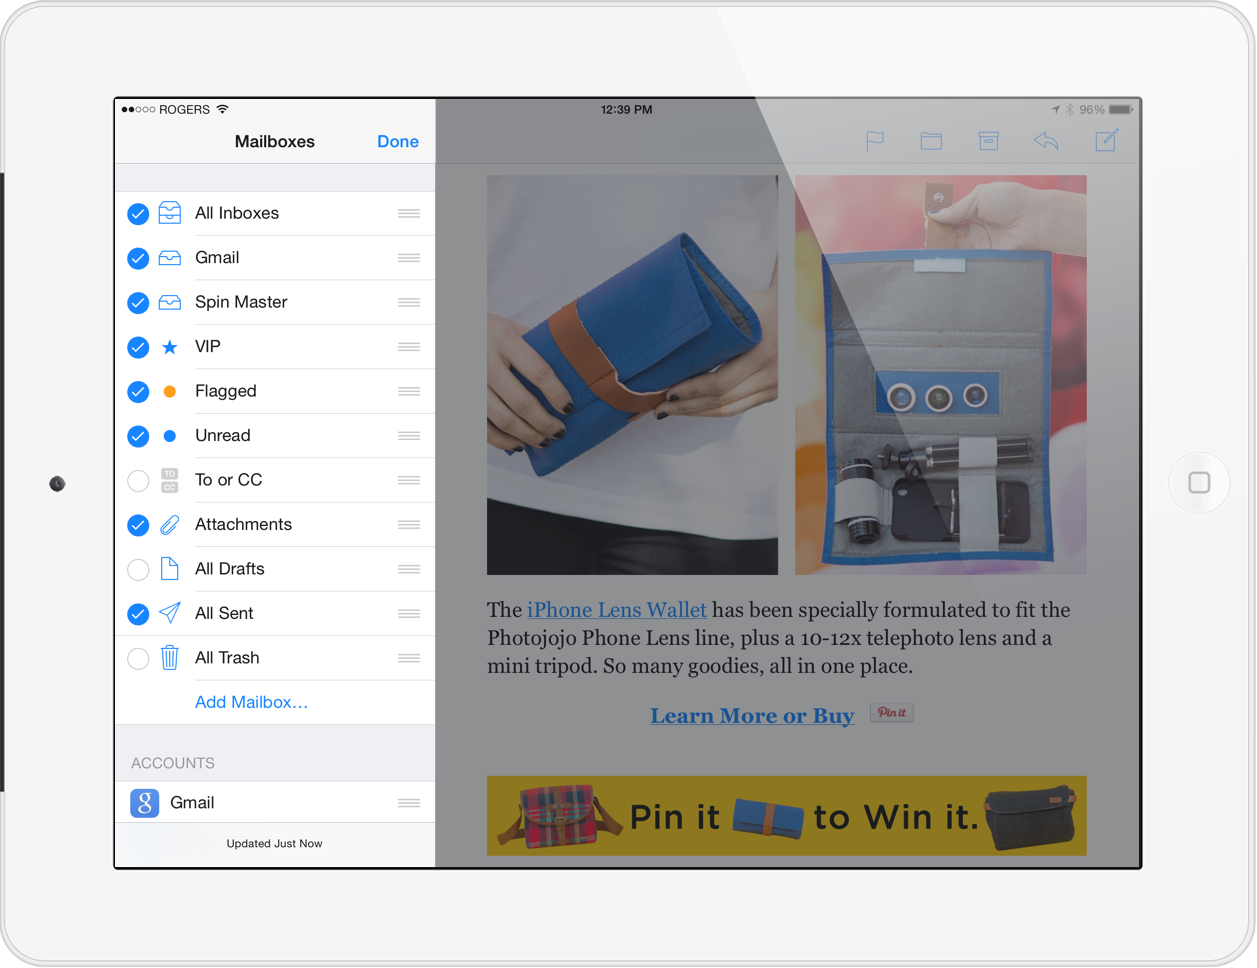 iPad Tips: Using Smart Mailboxes on iOS 7